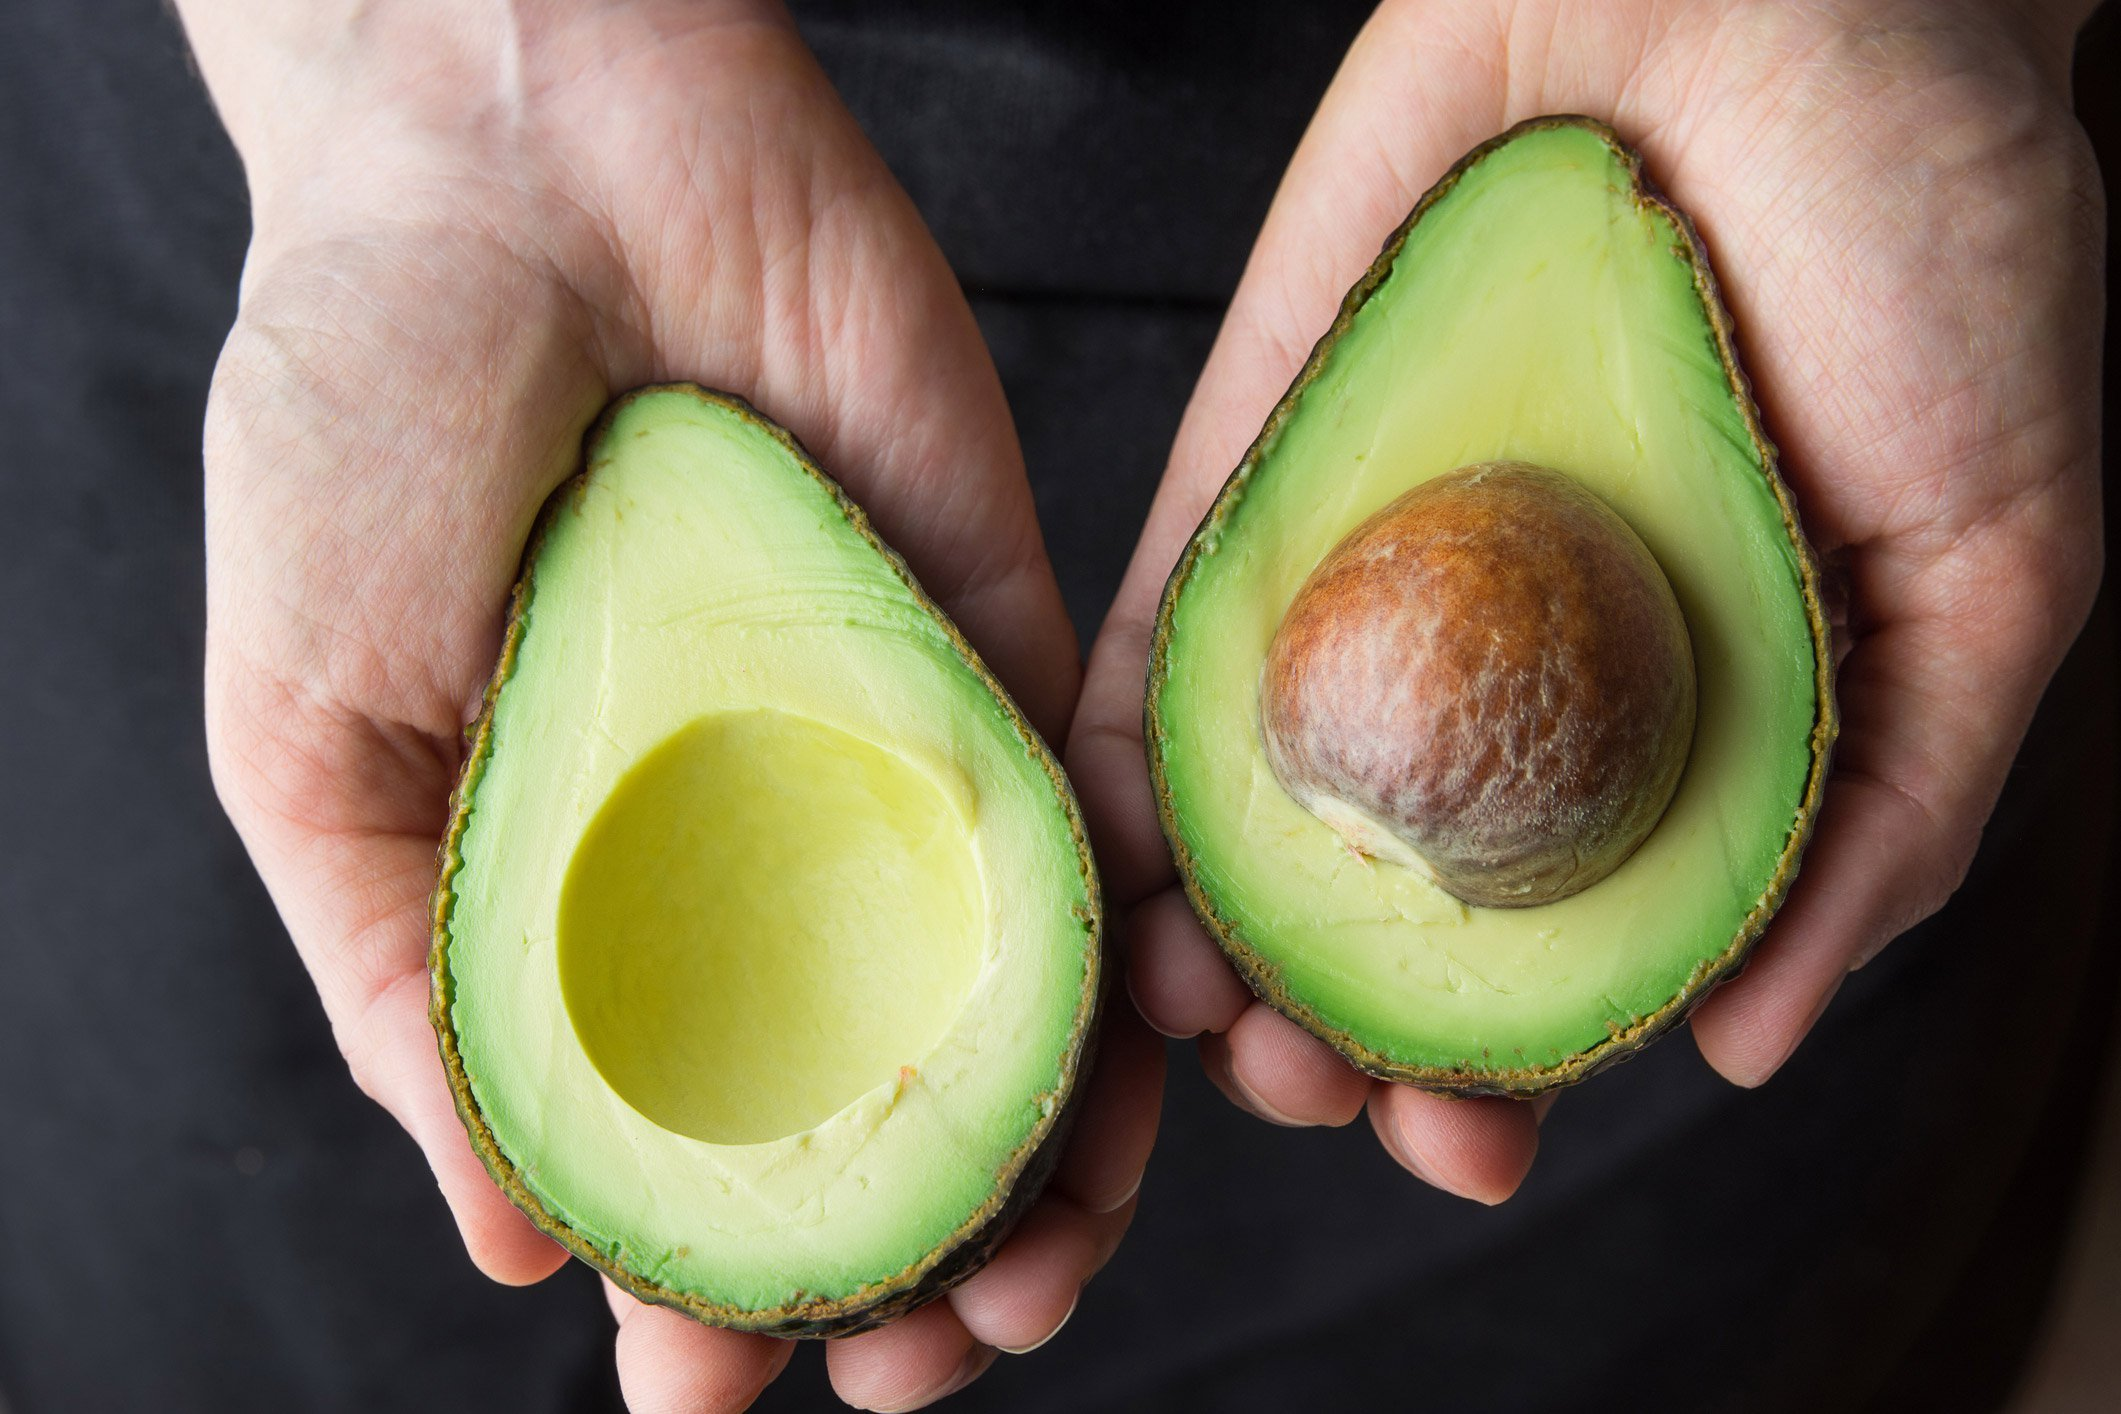 A cut in half avocado in hands